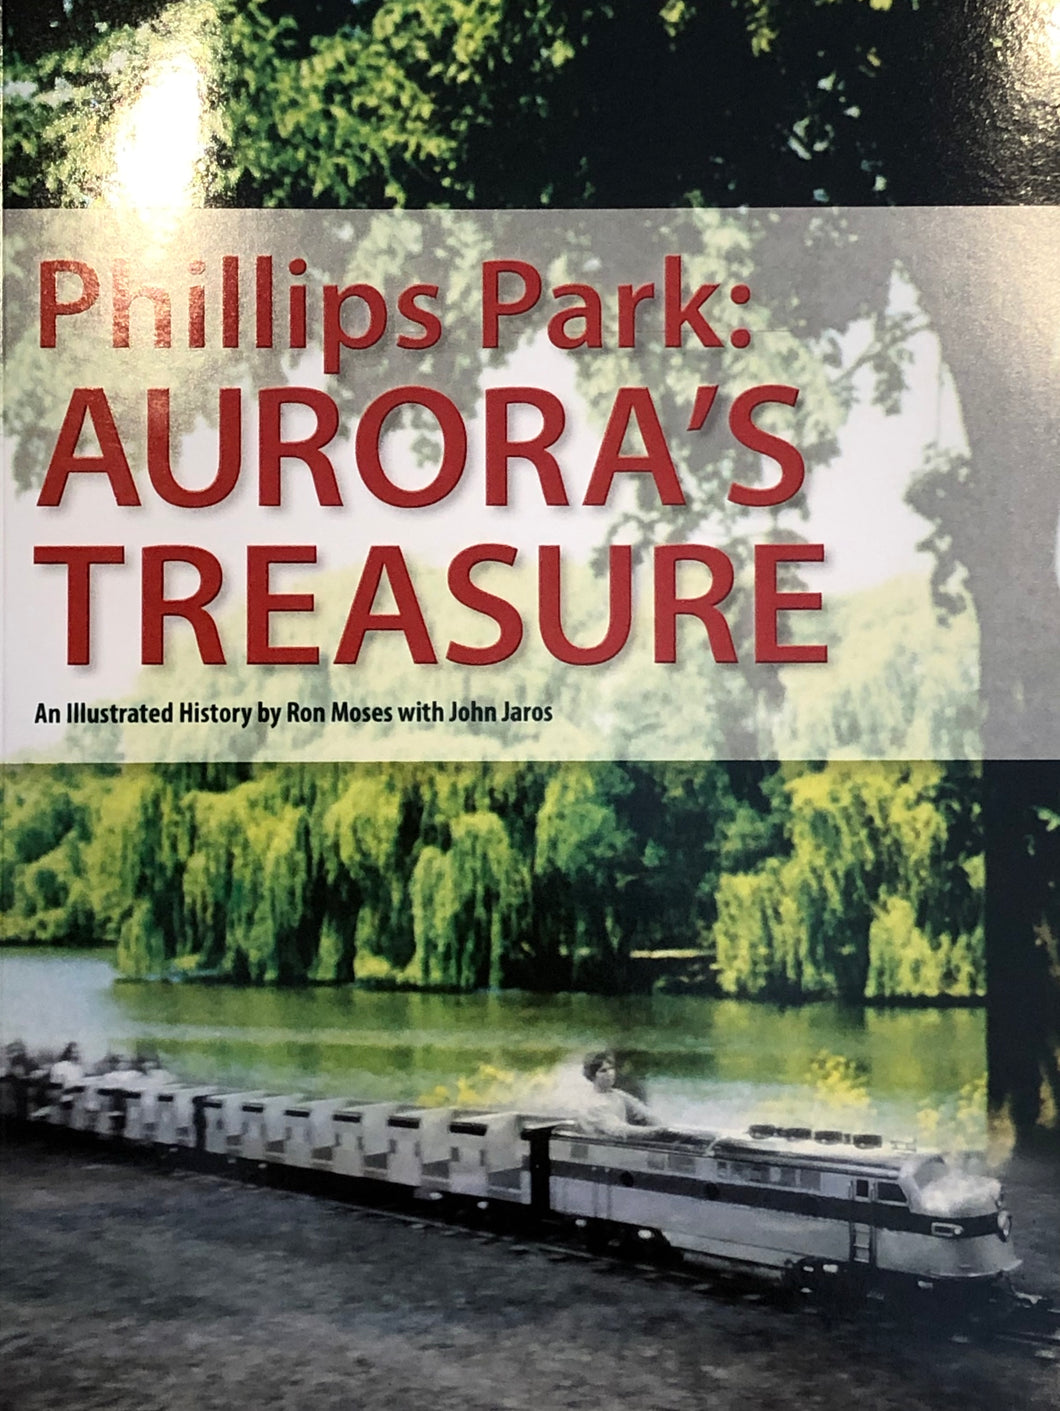 Phillips Park: Aurora's Treasure, An Illustrated History by Ron Moses with John Jaros